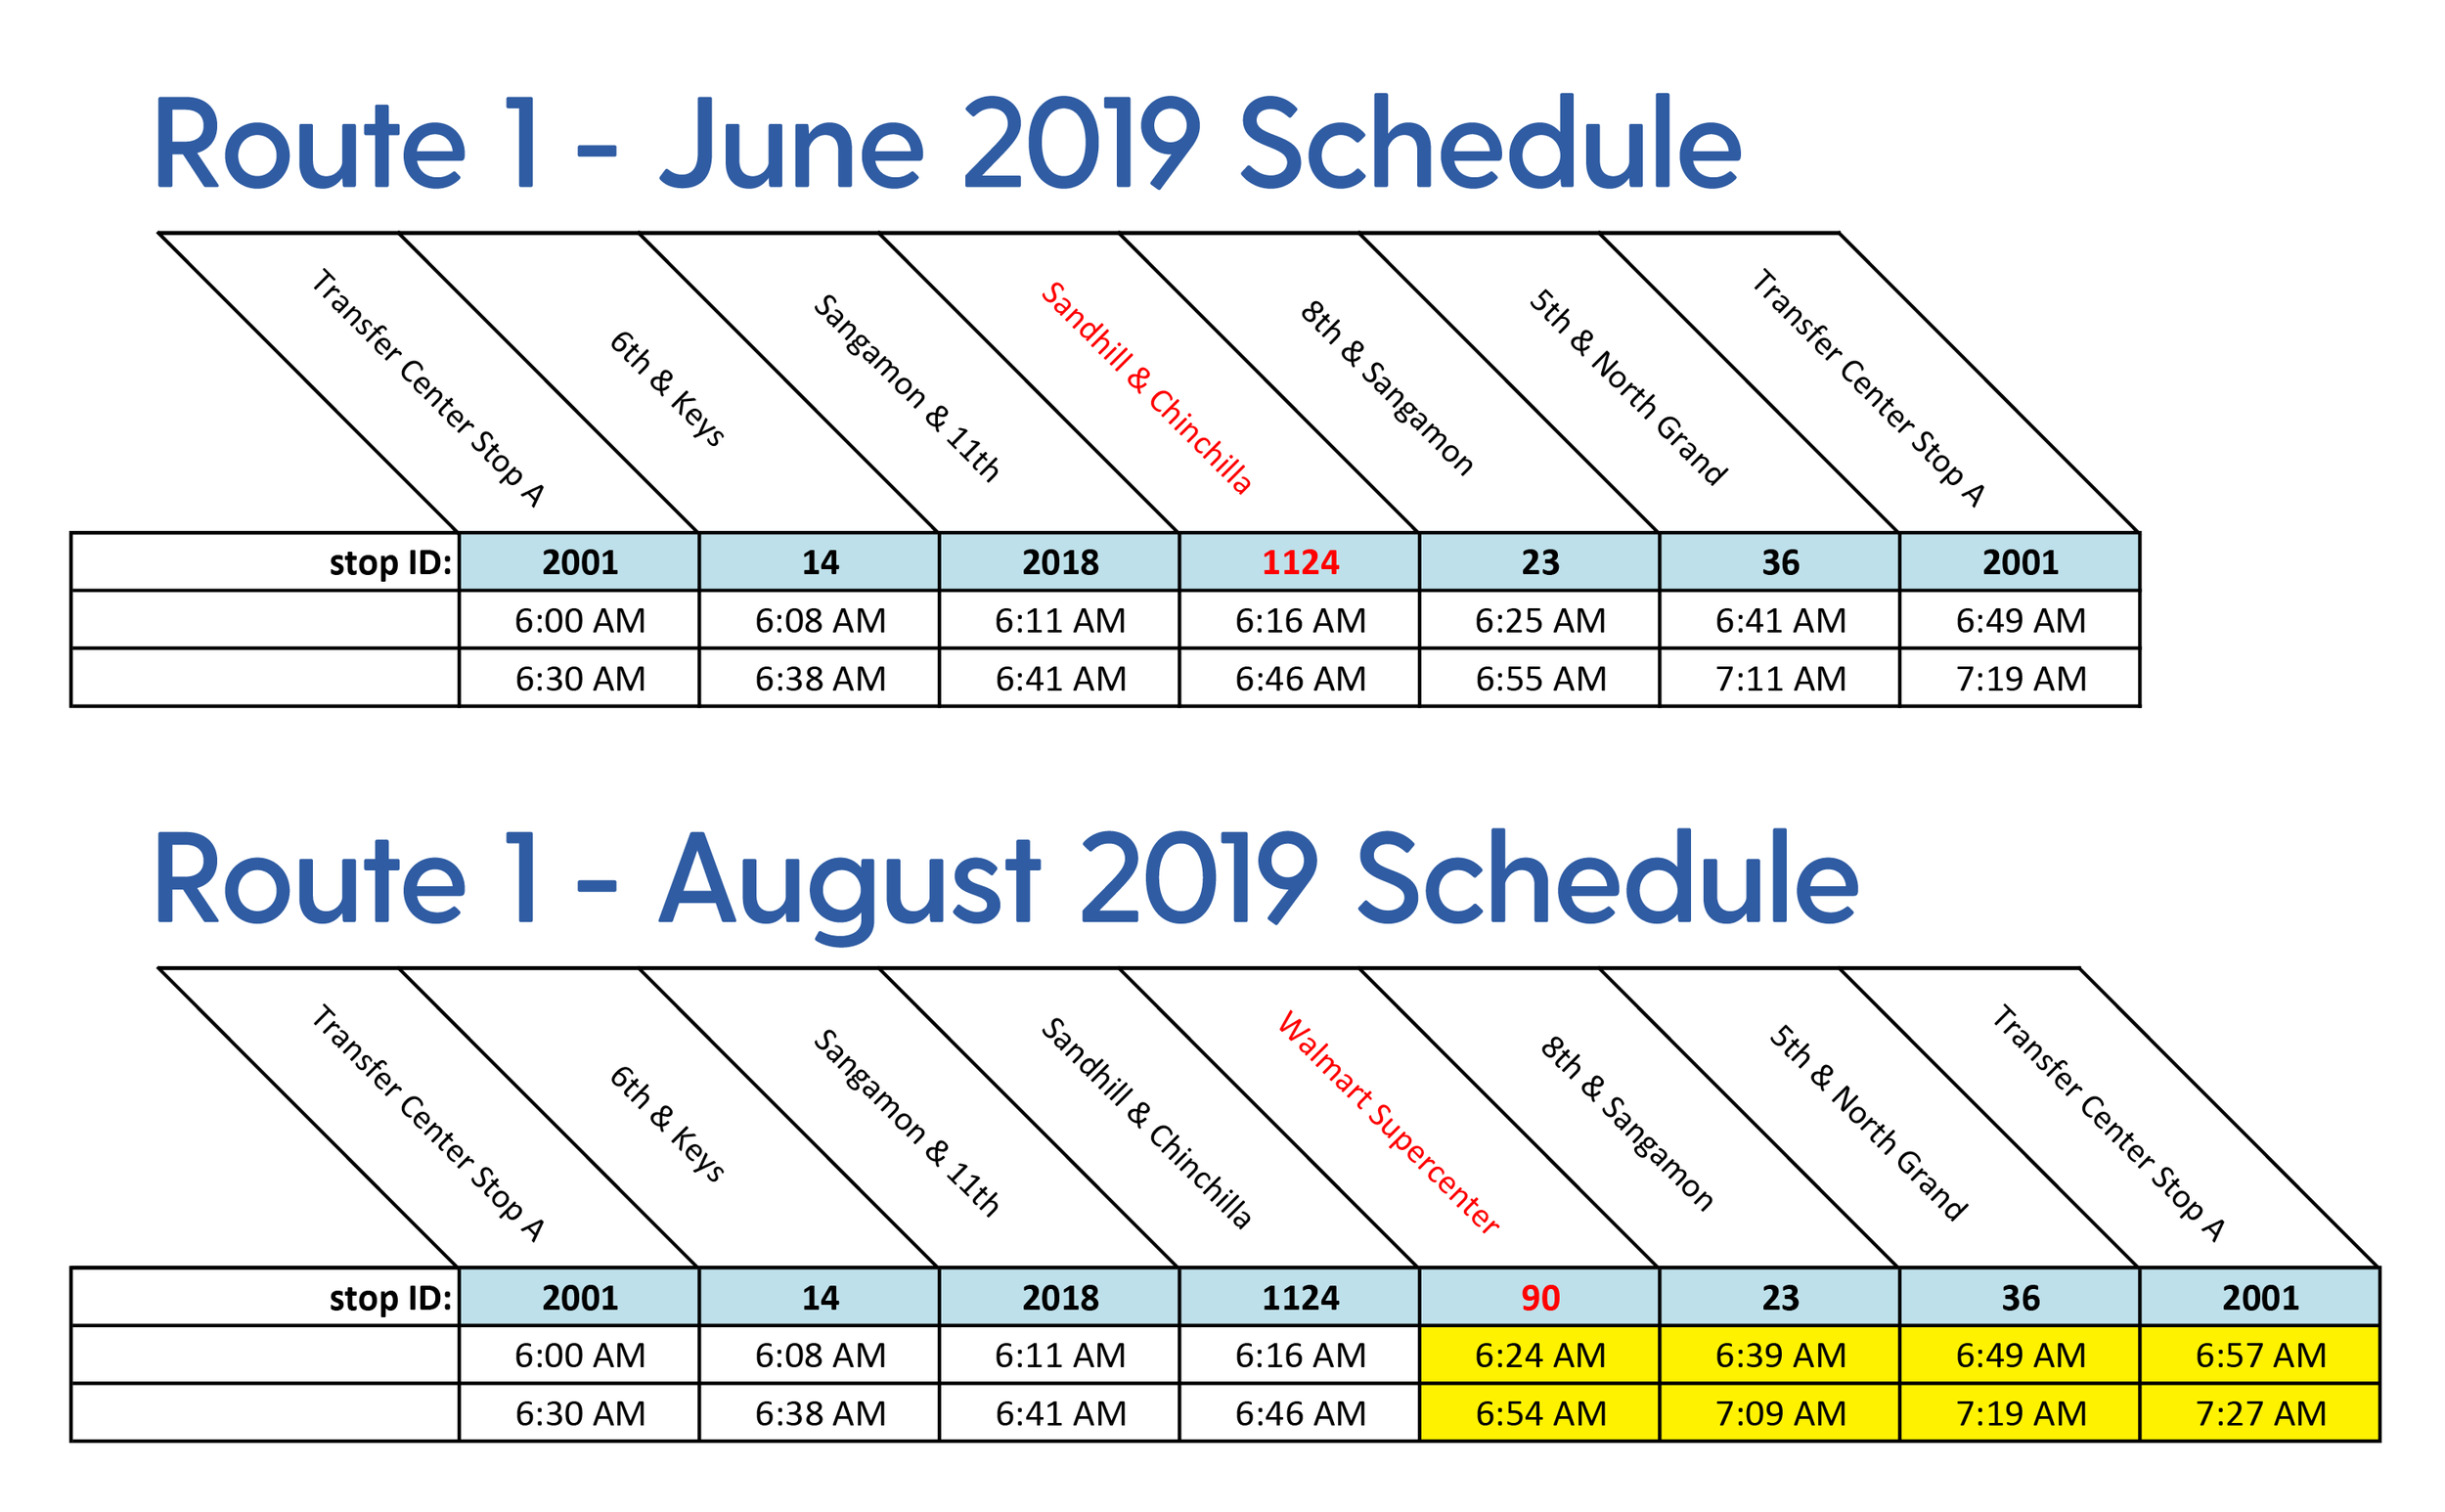 The first two weekday trips on the June 2019 Route 1 schedule compared to those going into effect on August 19th, 2019.